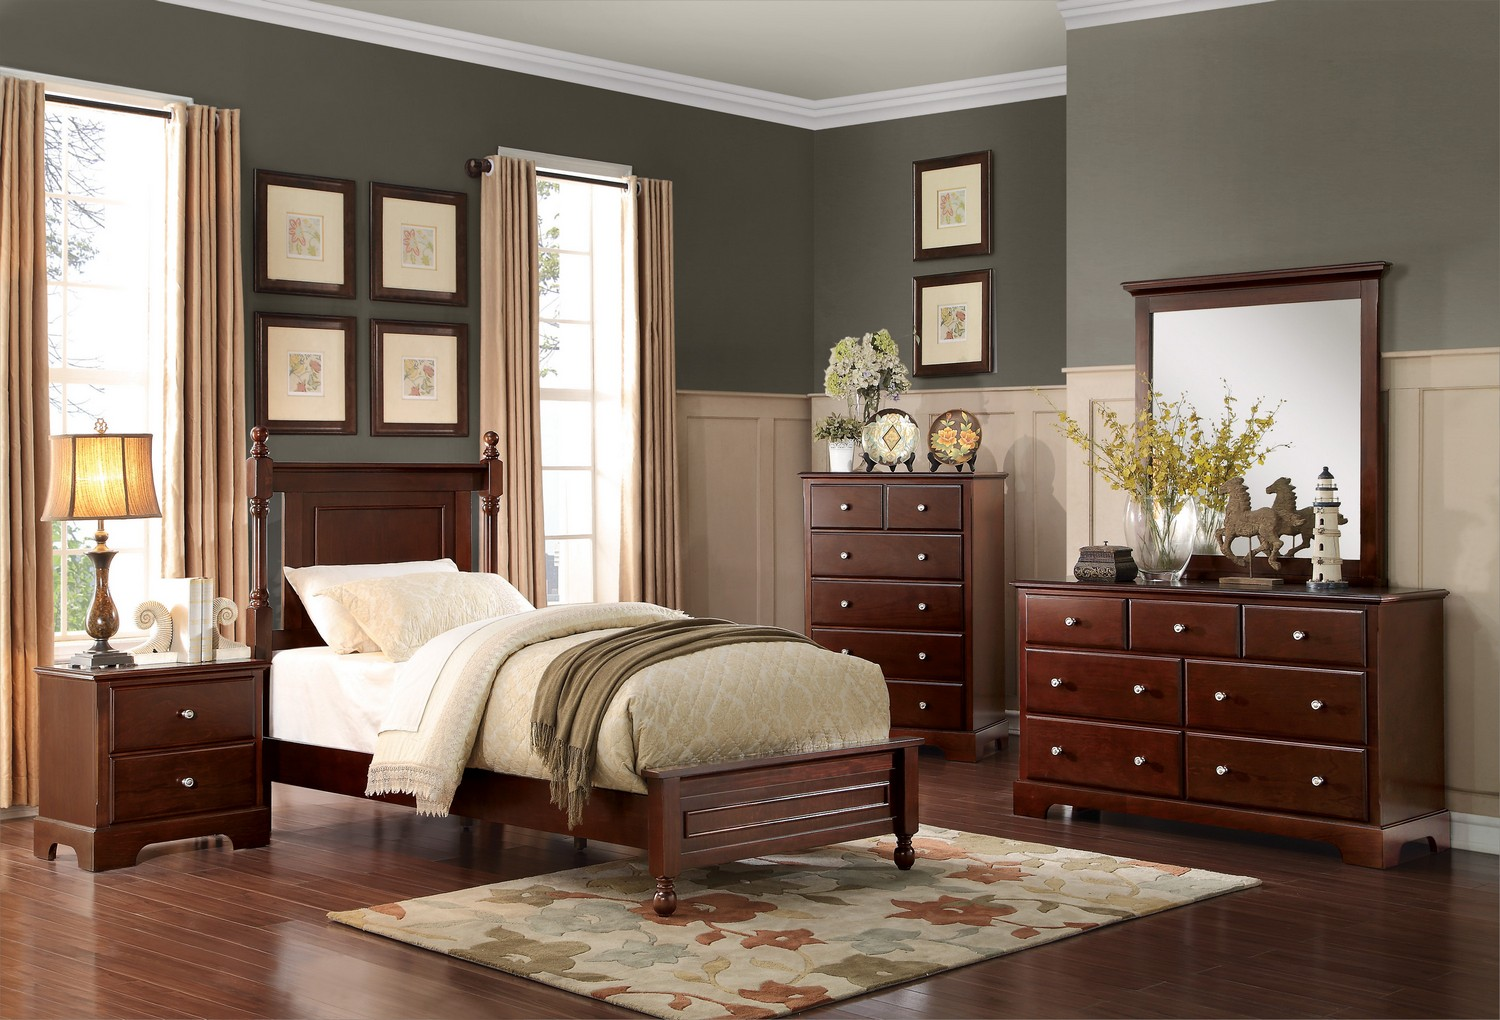 Homelegance Morelle Bedroom Set - Cherry